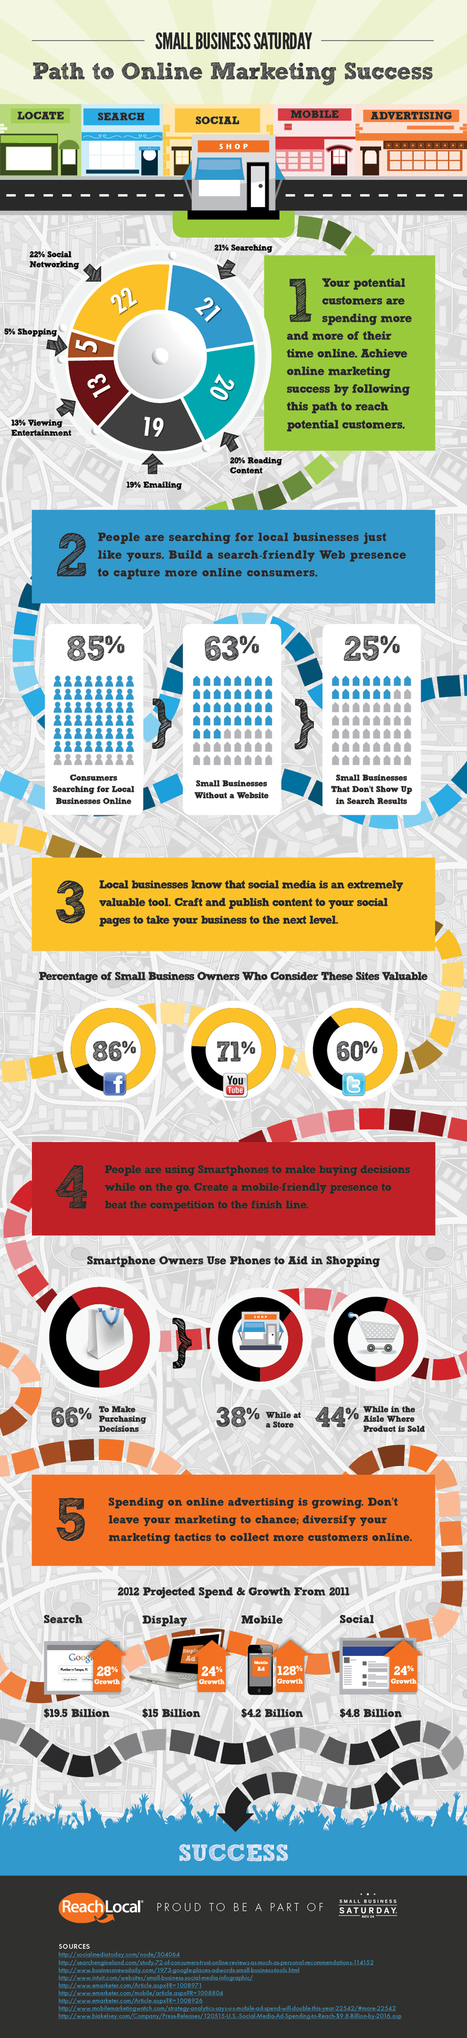 Promote Smarter, Not Louder: Holiday Marketing Tips for Small Businesses [Infographic] | PEI AUDIT | Scoop.it